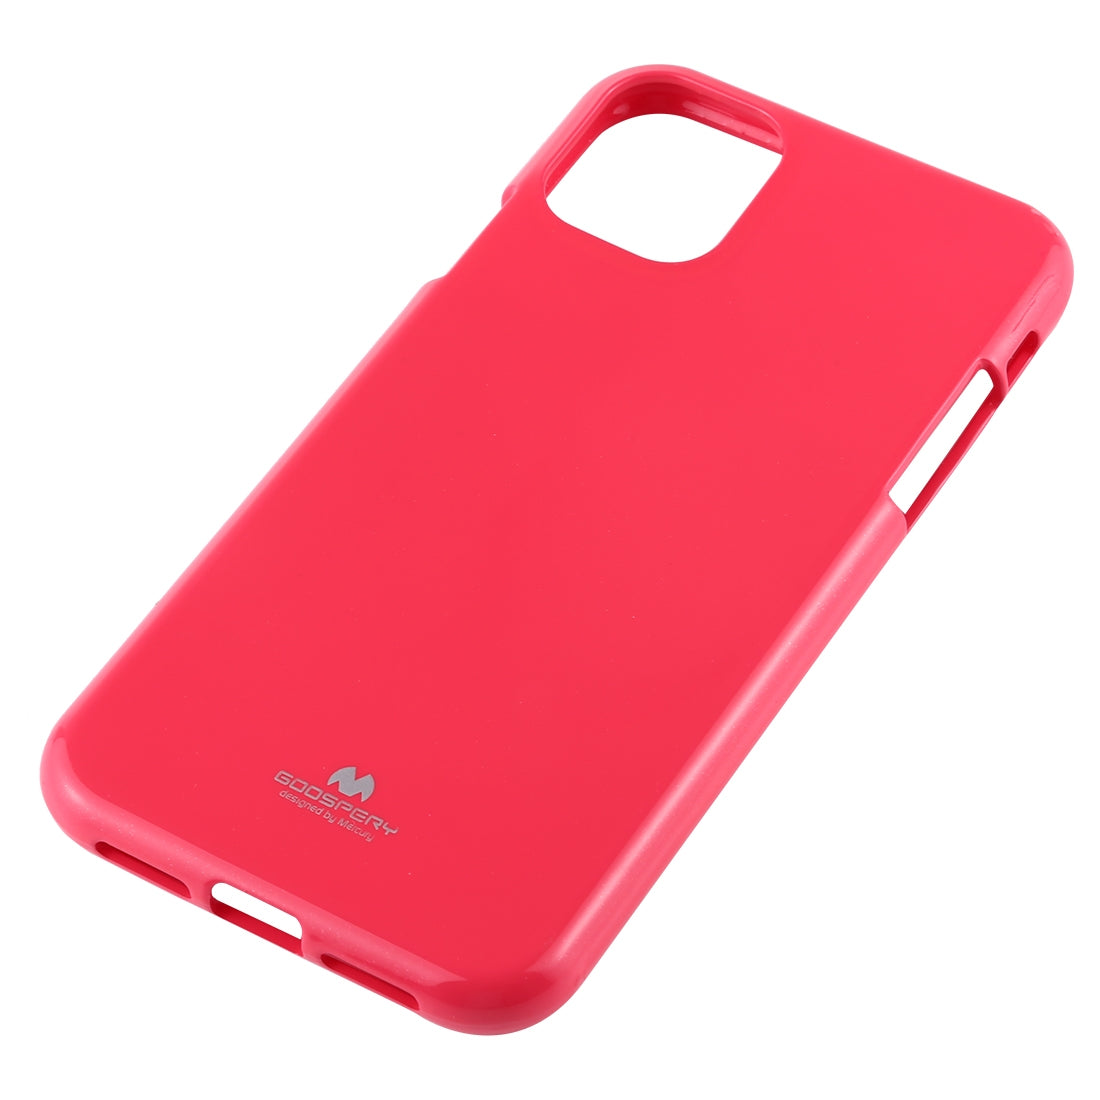 GOOSPERY Colour Pearl Jelly Case for iPhone 11 Pro Max / 11 Pro / 11